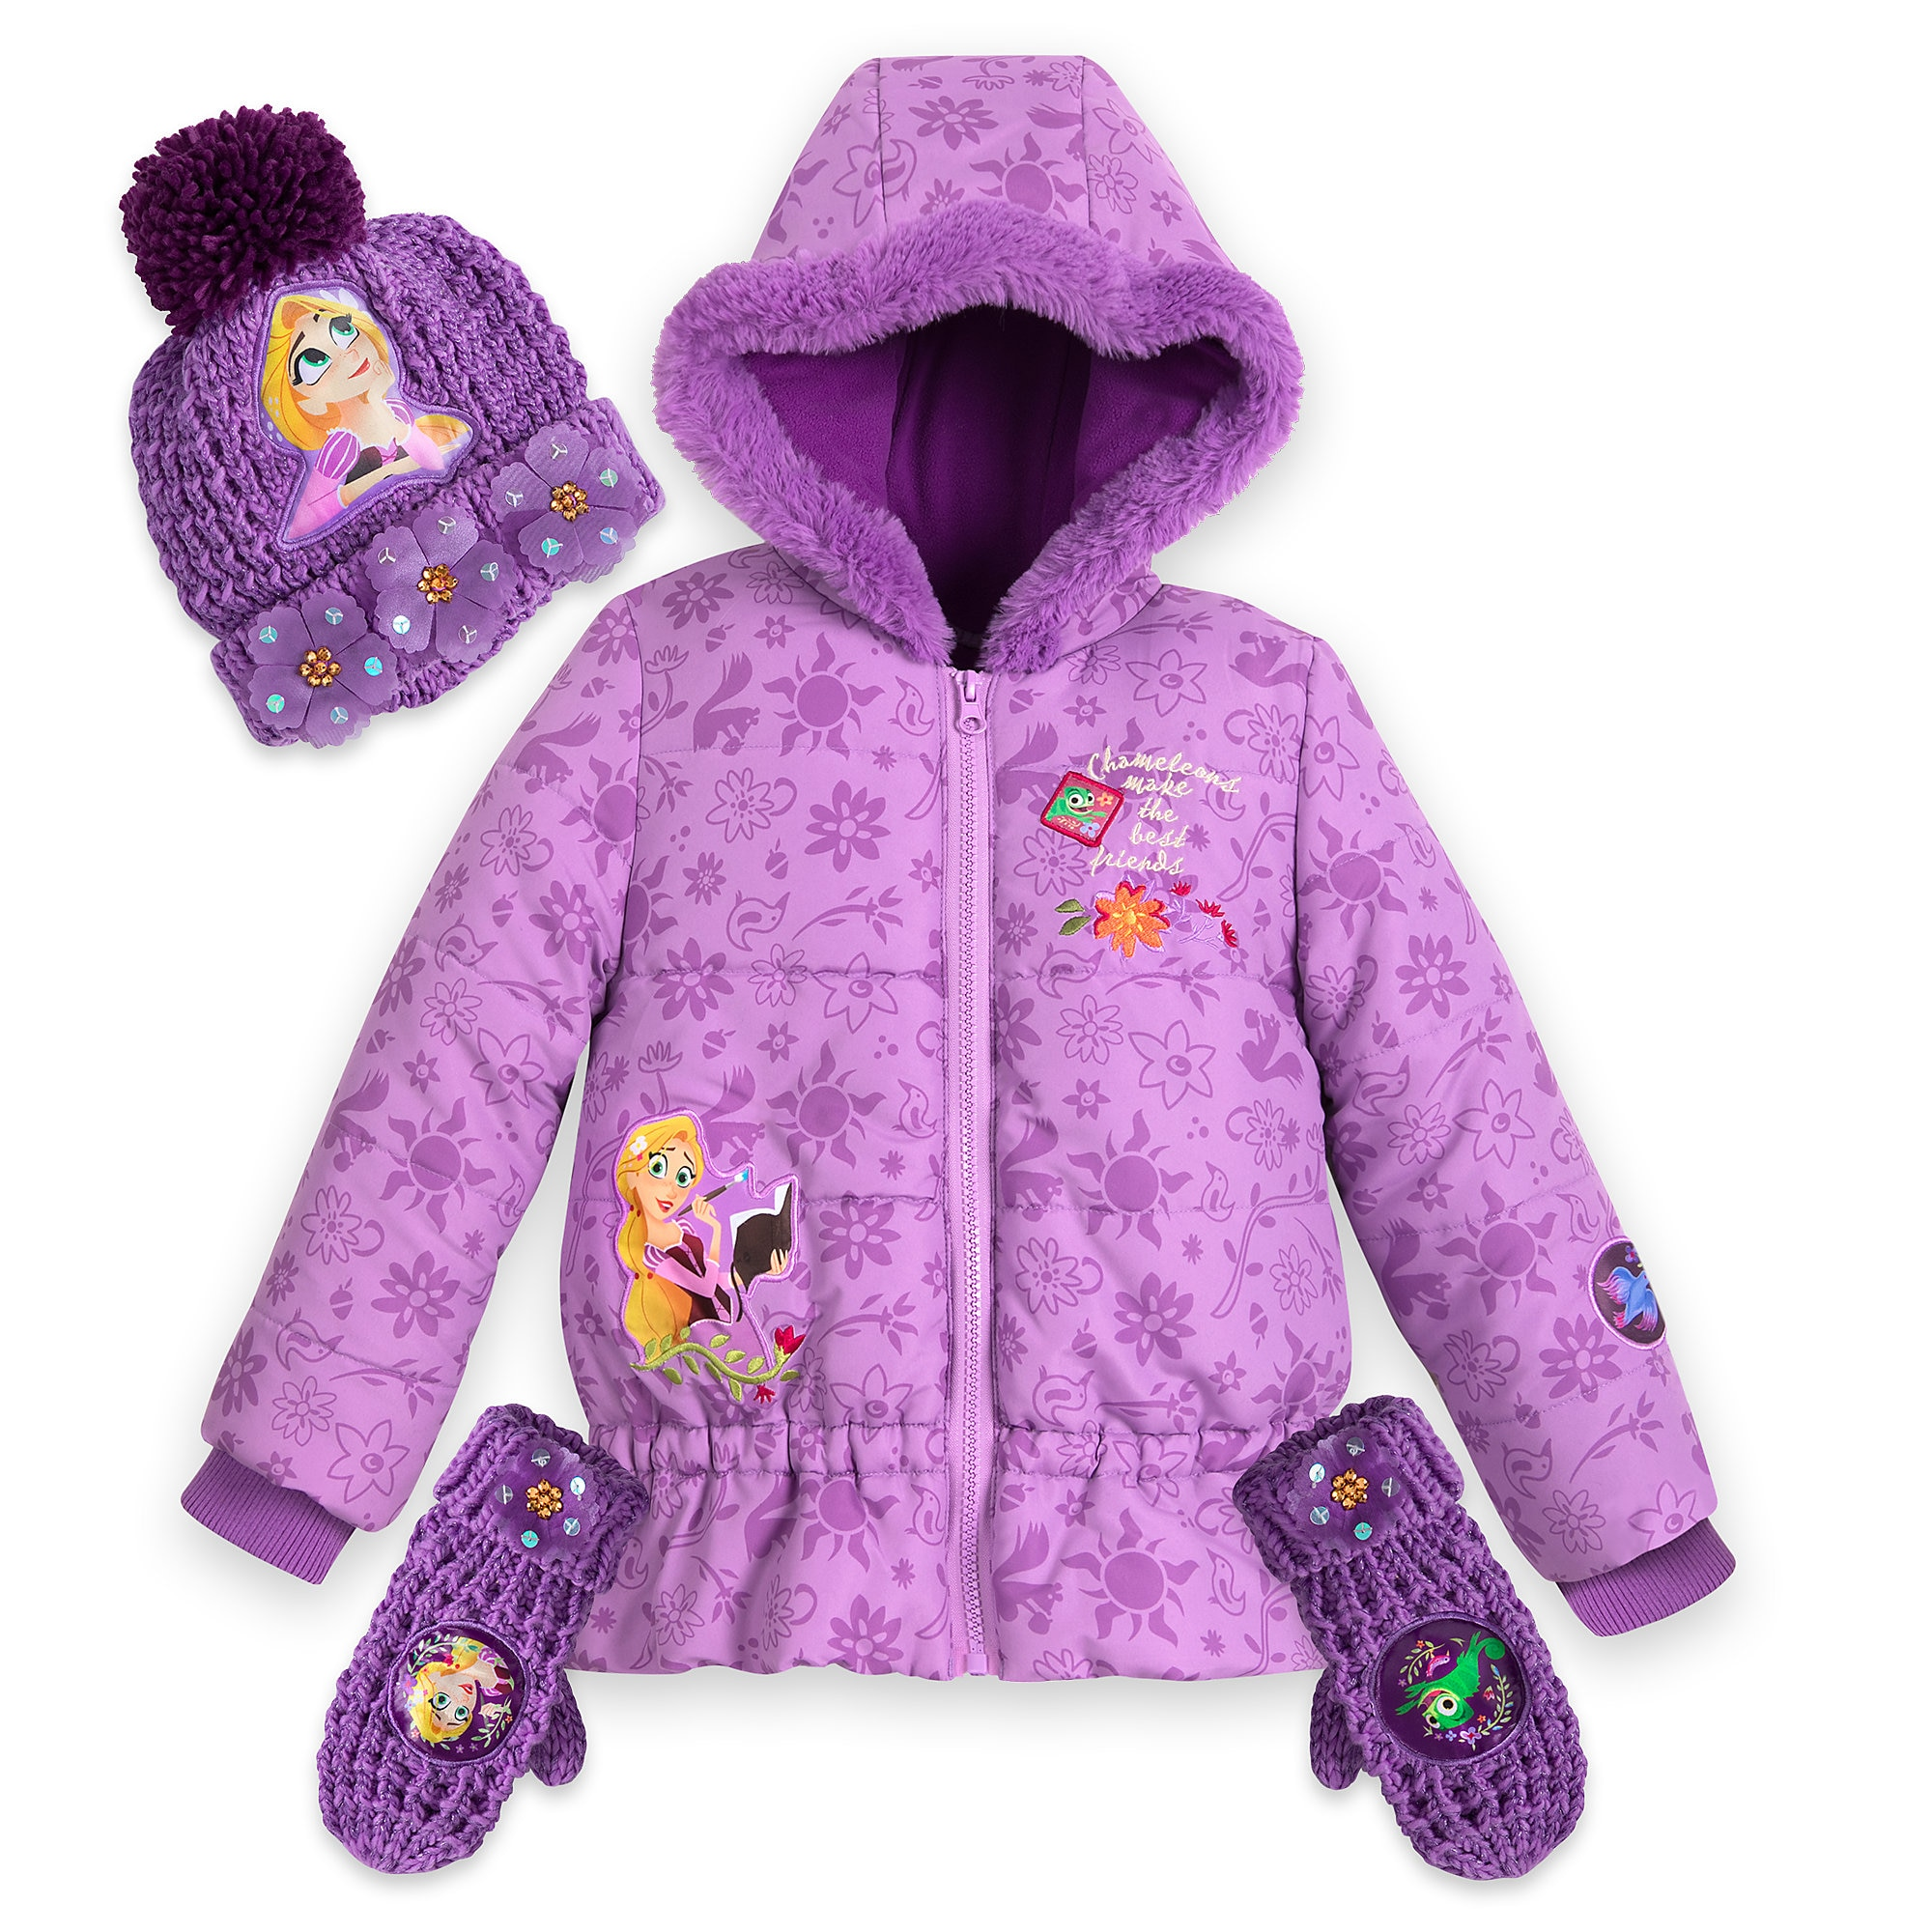 Rapunzel Warmwear Collection for Girls